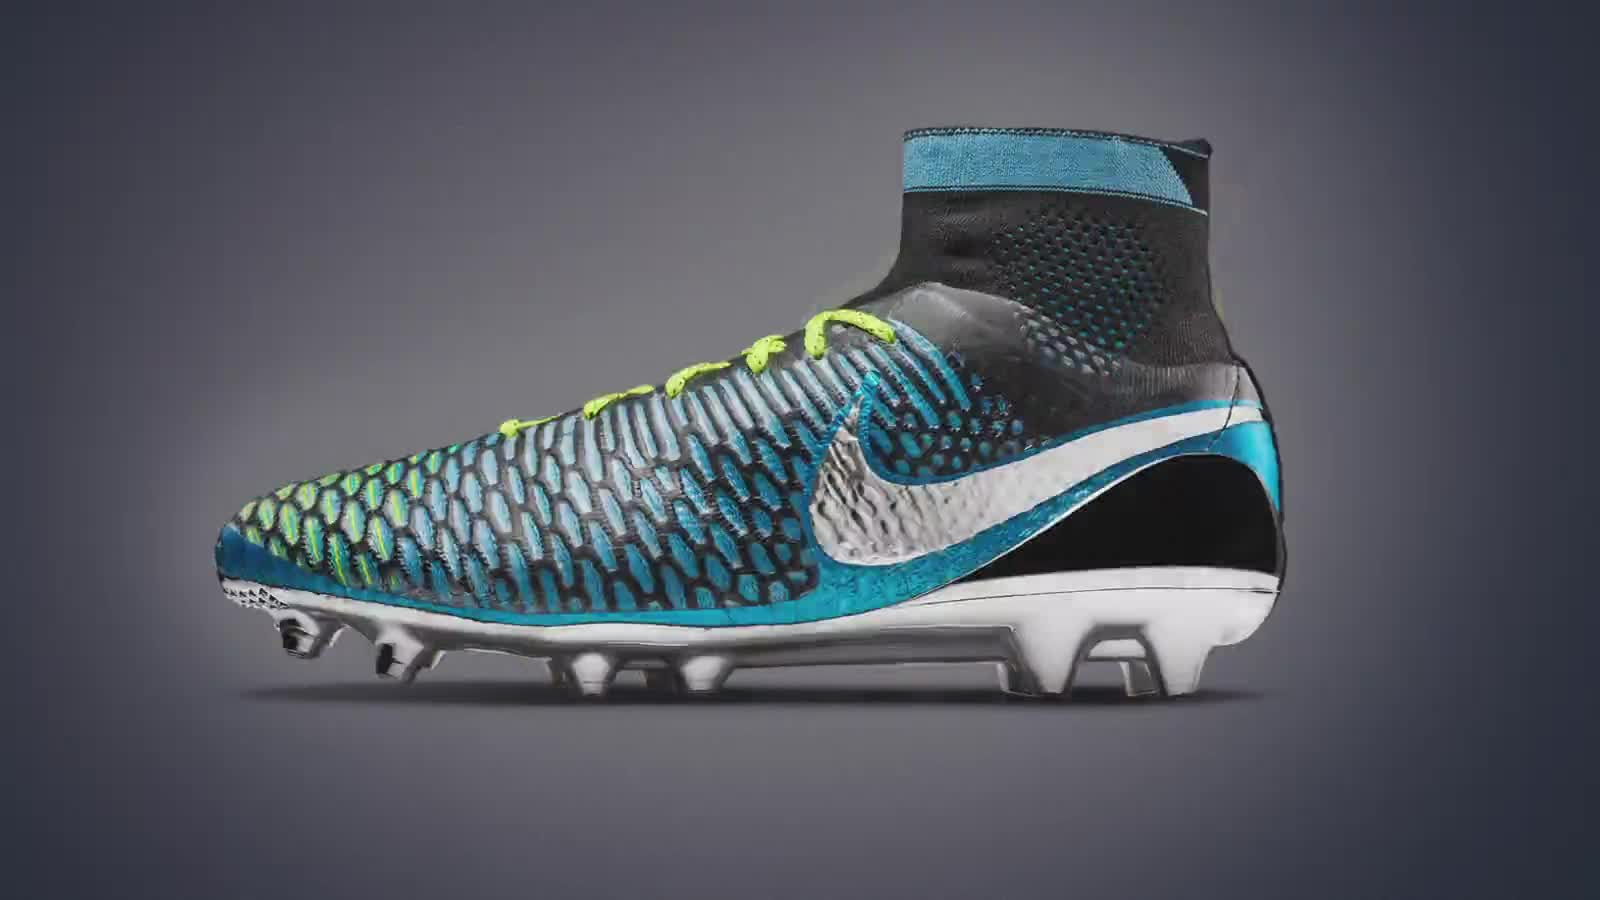 Boot design by nike - The Final Nike Magista Football Boot Design Features The Lettering Maestri It Was Planned To Release The Magista As Next Generation Of The Nike Ctr